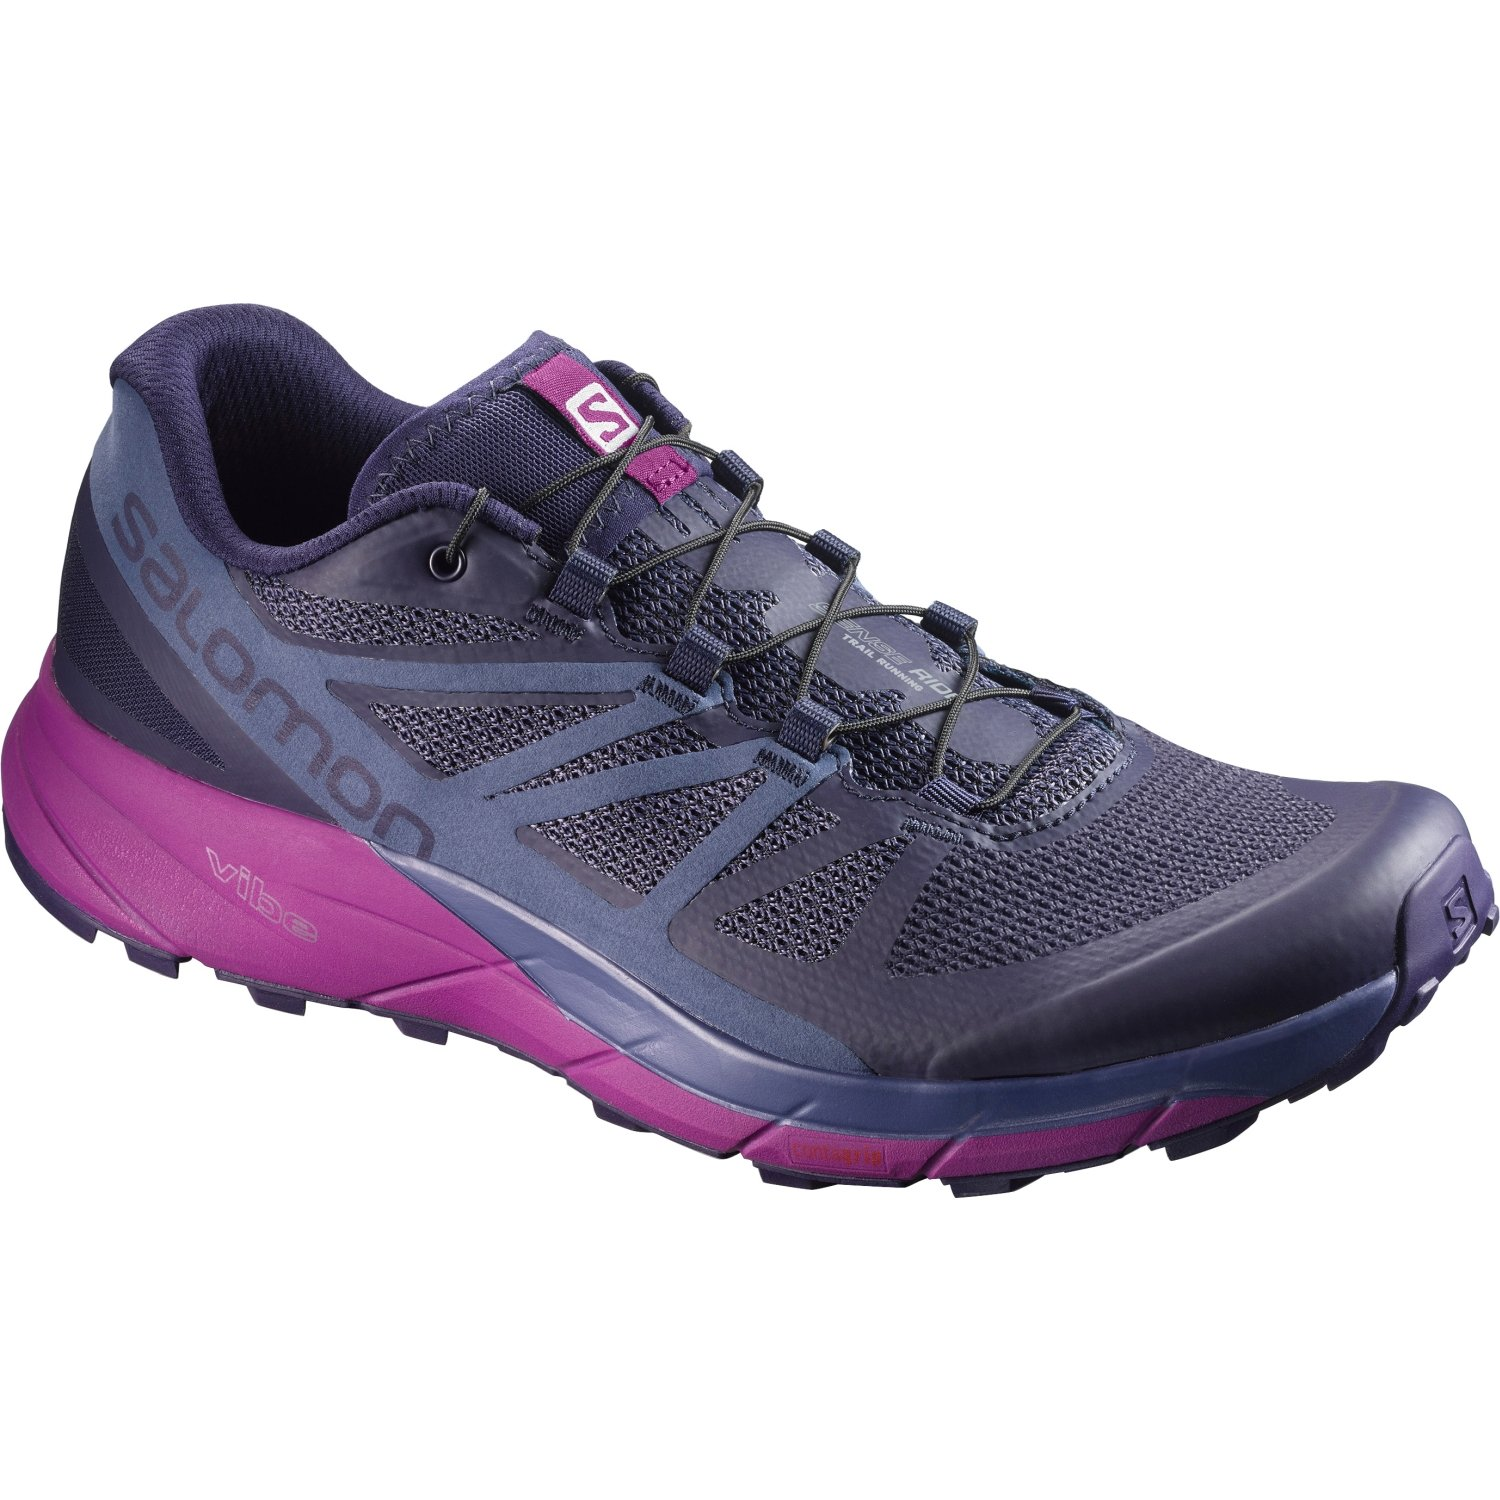 Salomon Sense Ride Running Shoe - Women's B01N0HJXMD 7.5 M US|Evening Blue, Crown Blue, Grape Juice